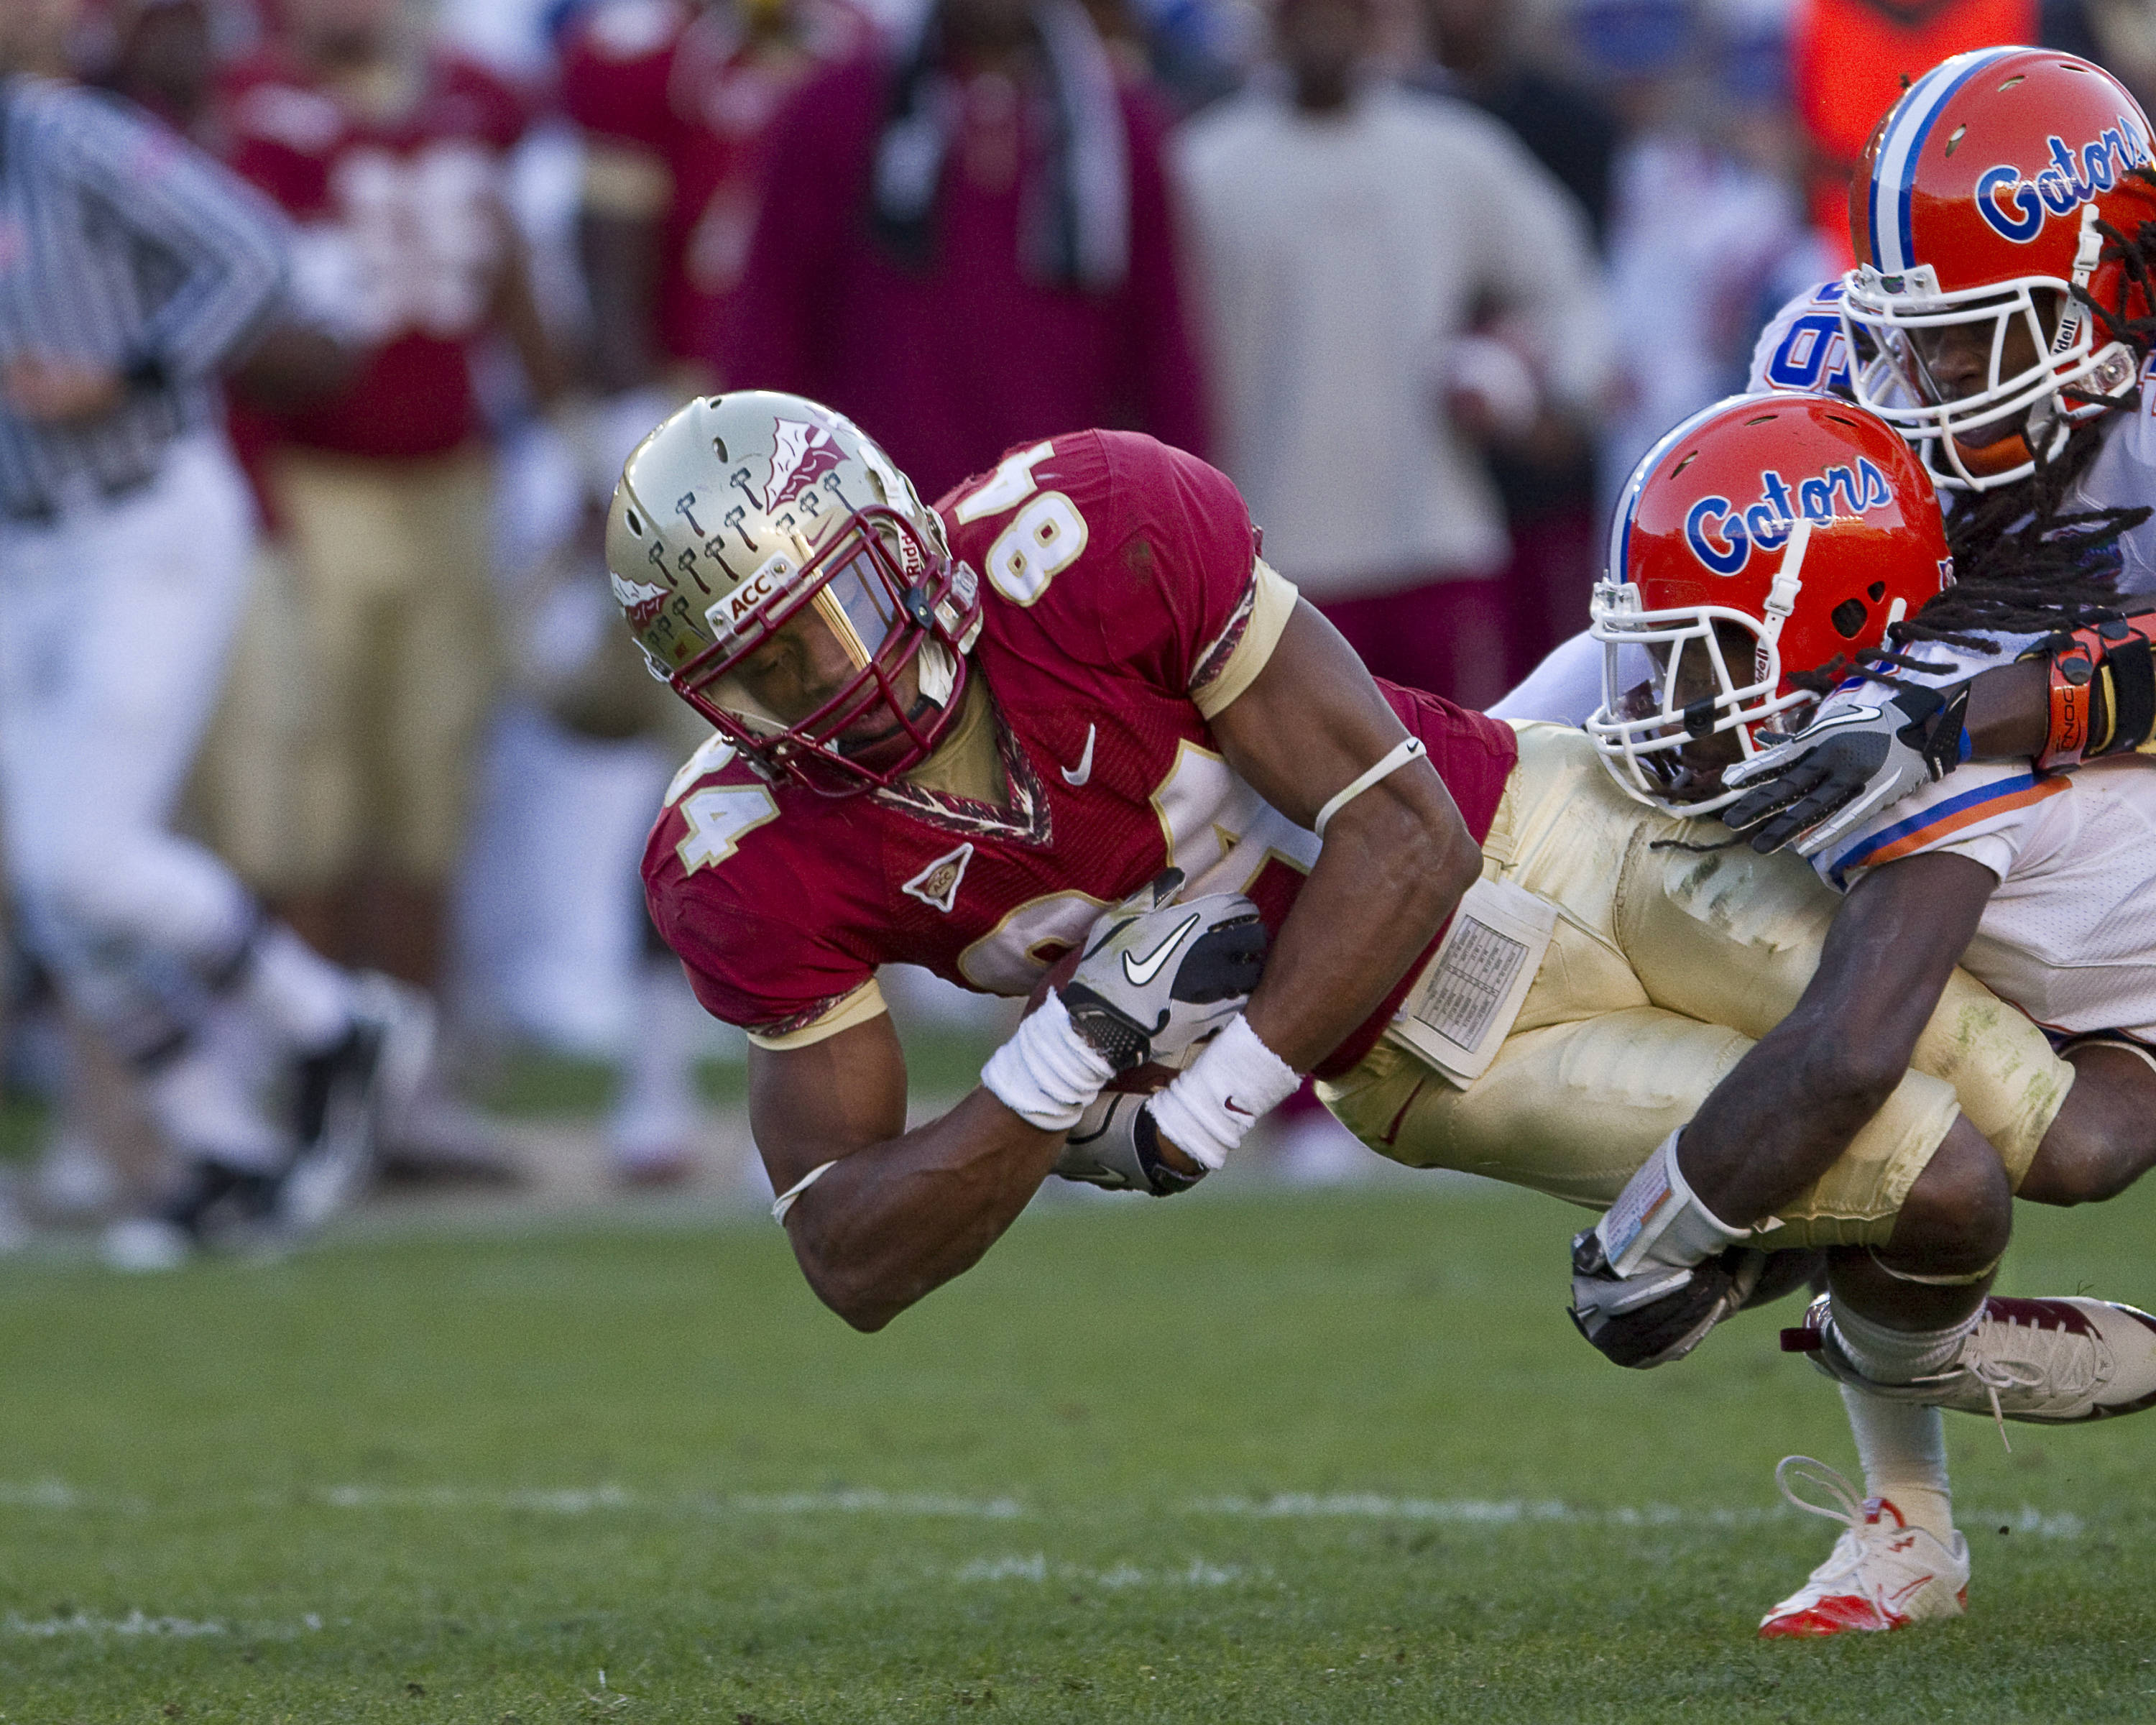 Rodney Smith (84) is tackled as he dives forward.